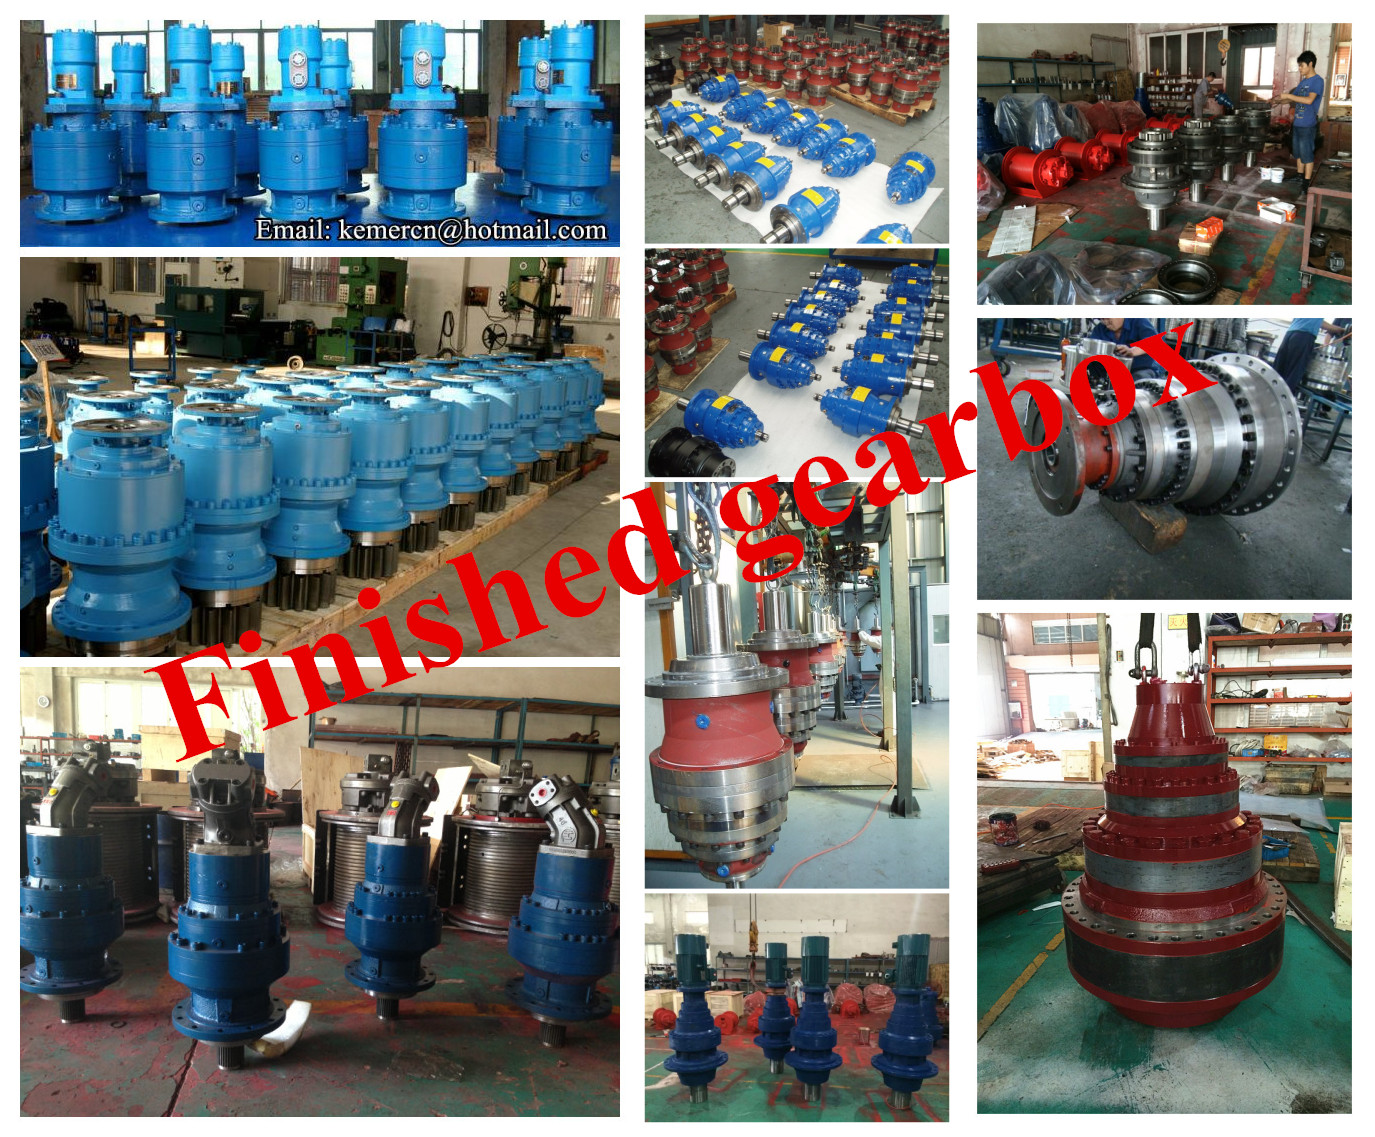 planetary gearbox reduction gearbox speed reducer bonfiglioli planetary gearbox brevini planetary gearbox